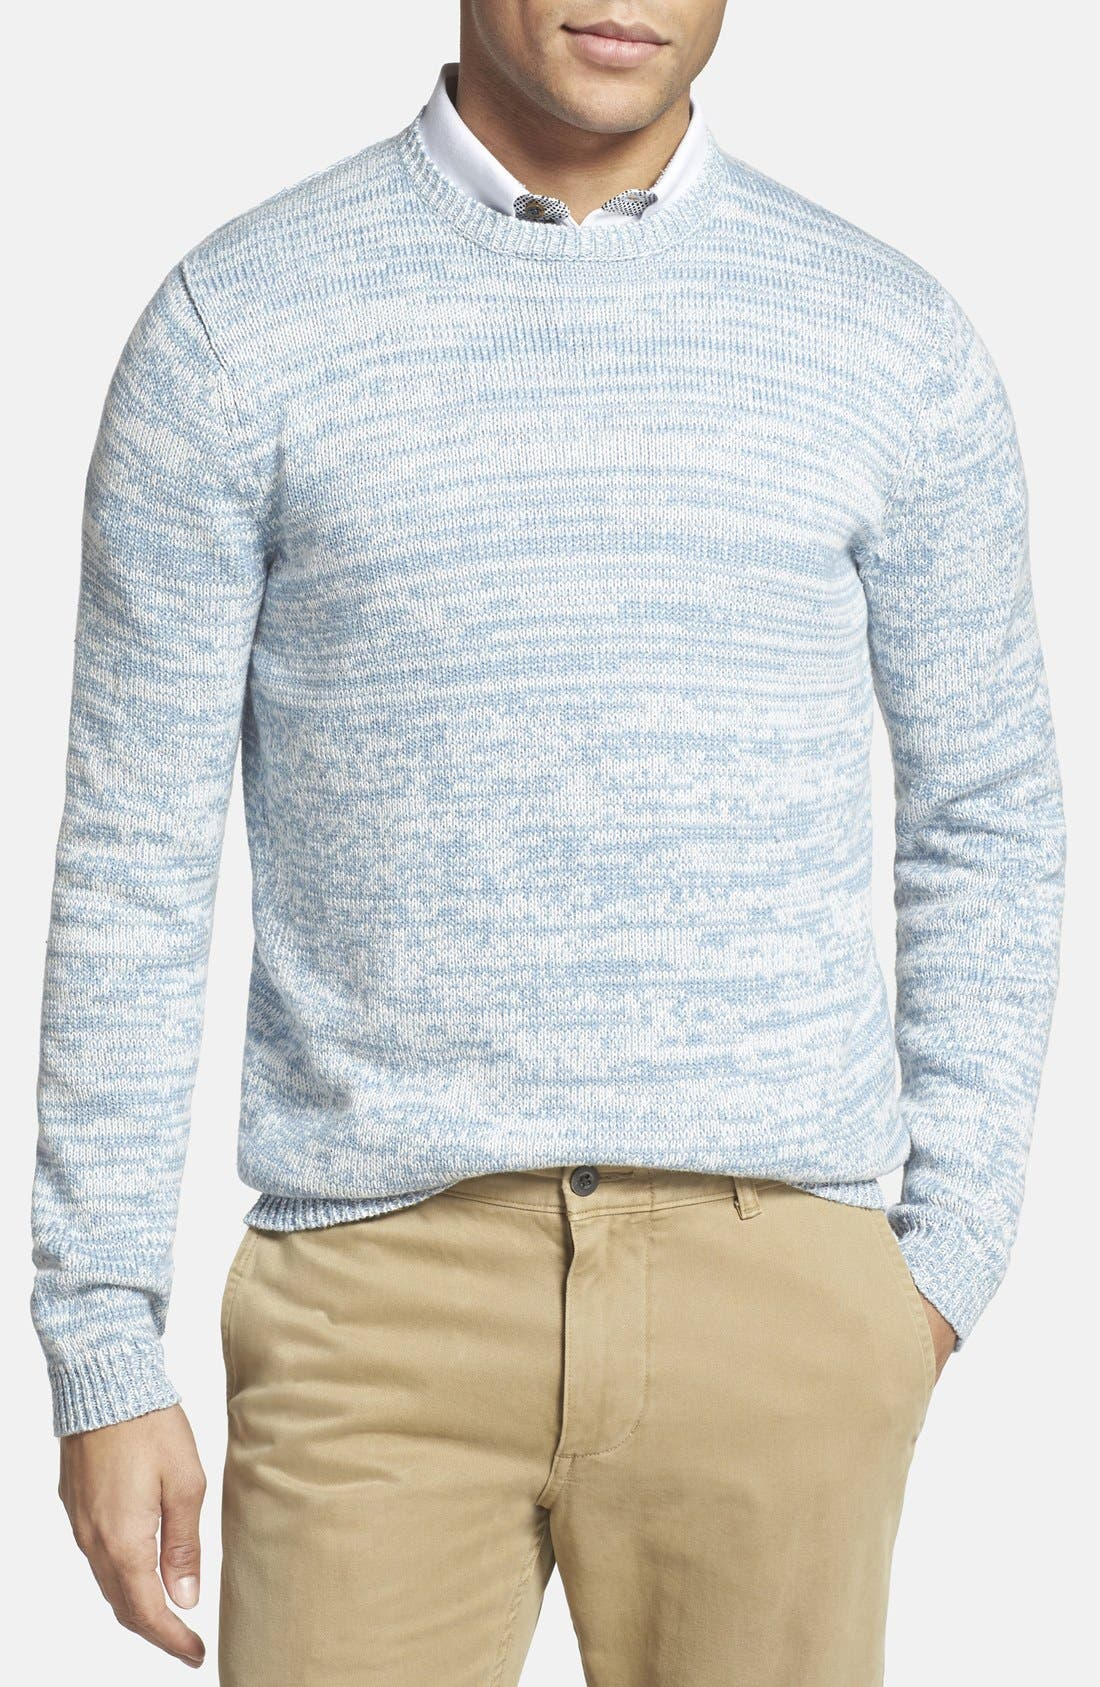 GRAYERS 'Beach Marl' Crewneck Sweater, Main, color, 465